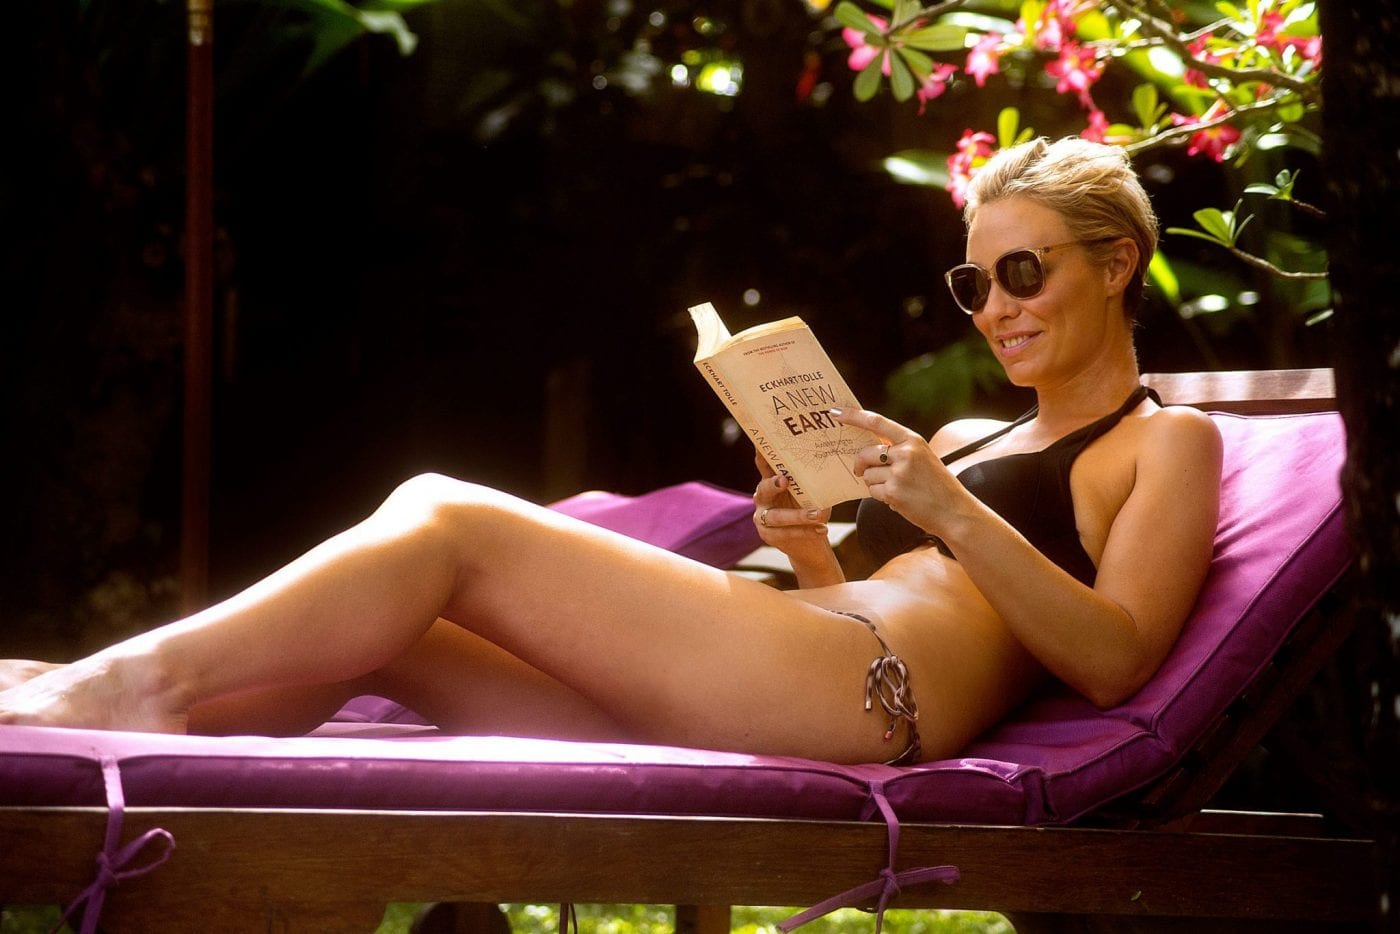 Woman relaxing reading a book and sunbathing in Bali at Bliss Sanctuary for Women